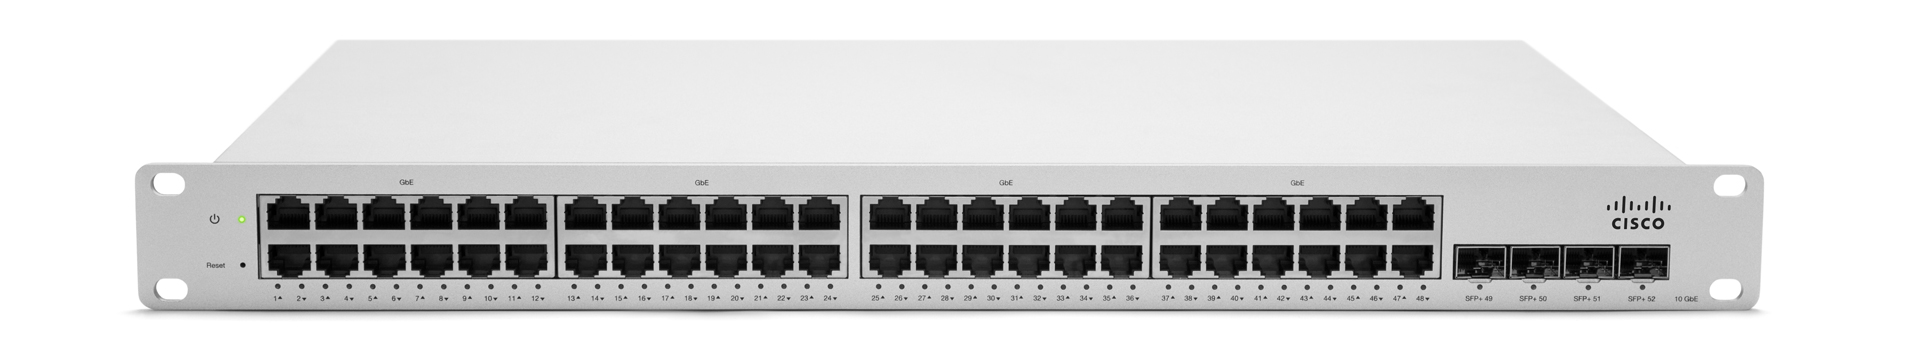 cisco-meraki-switch-ports